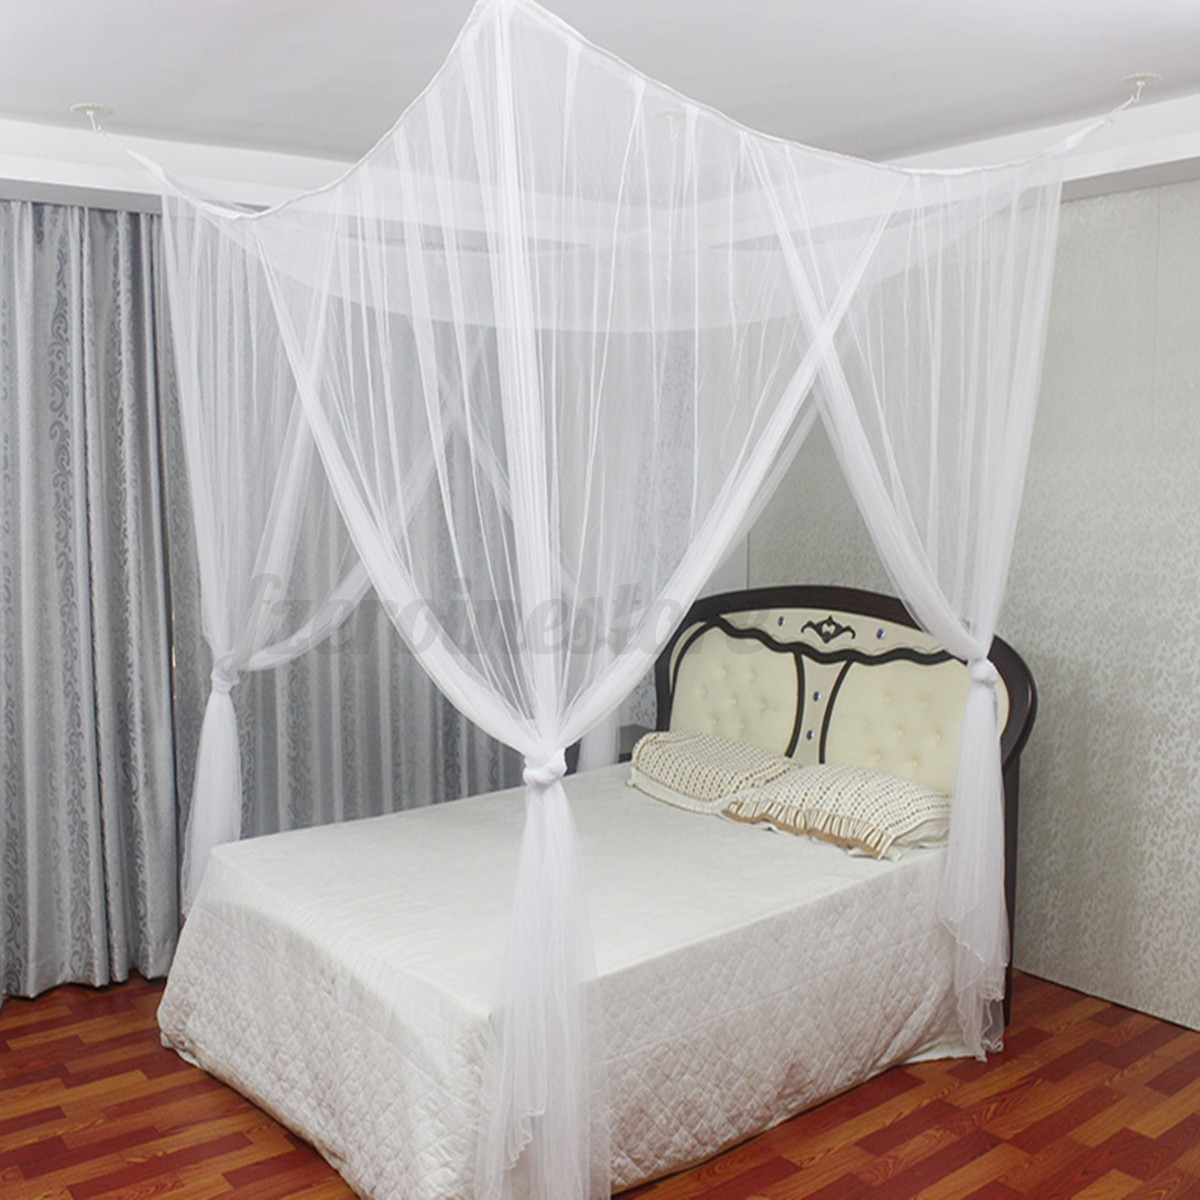 4 Post Canopy Bed 4 Post Poster Bed Canopy Four Corner Mosquito Insect Bug